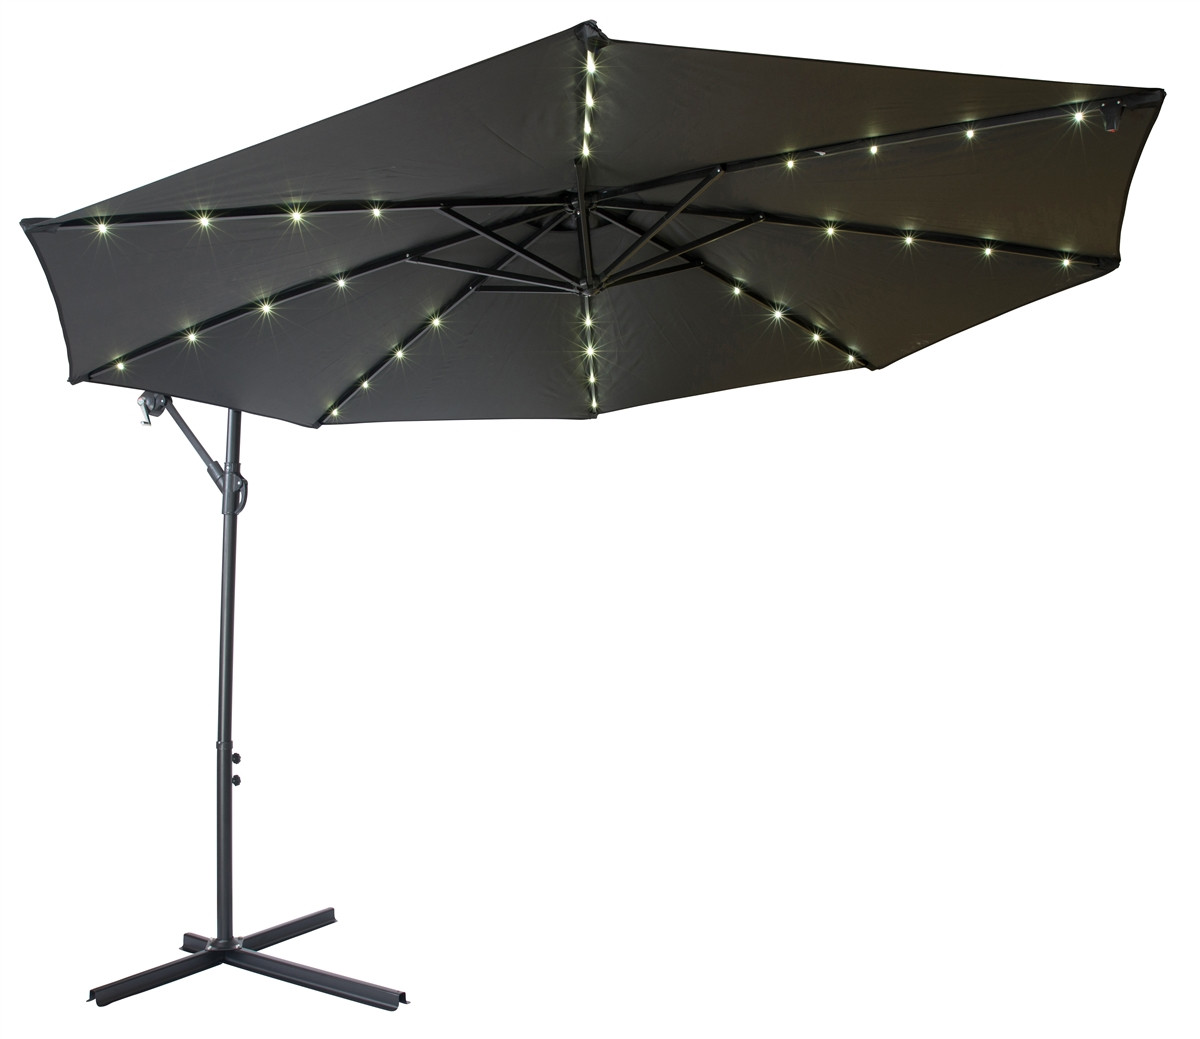 Best ideas about Patio Umbrellas Walmart . Save or Pin Tips & Ideas Best Choice Accessories Umbrella Base Now.